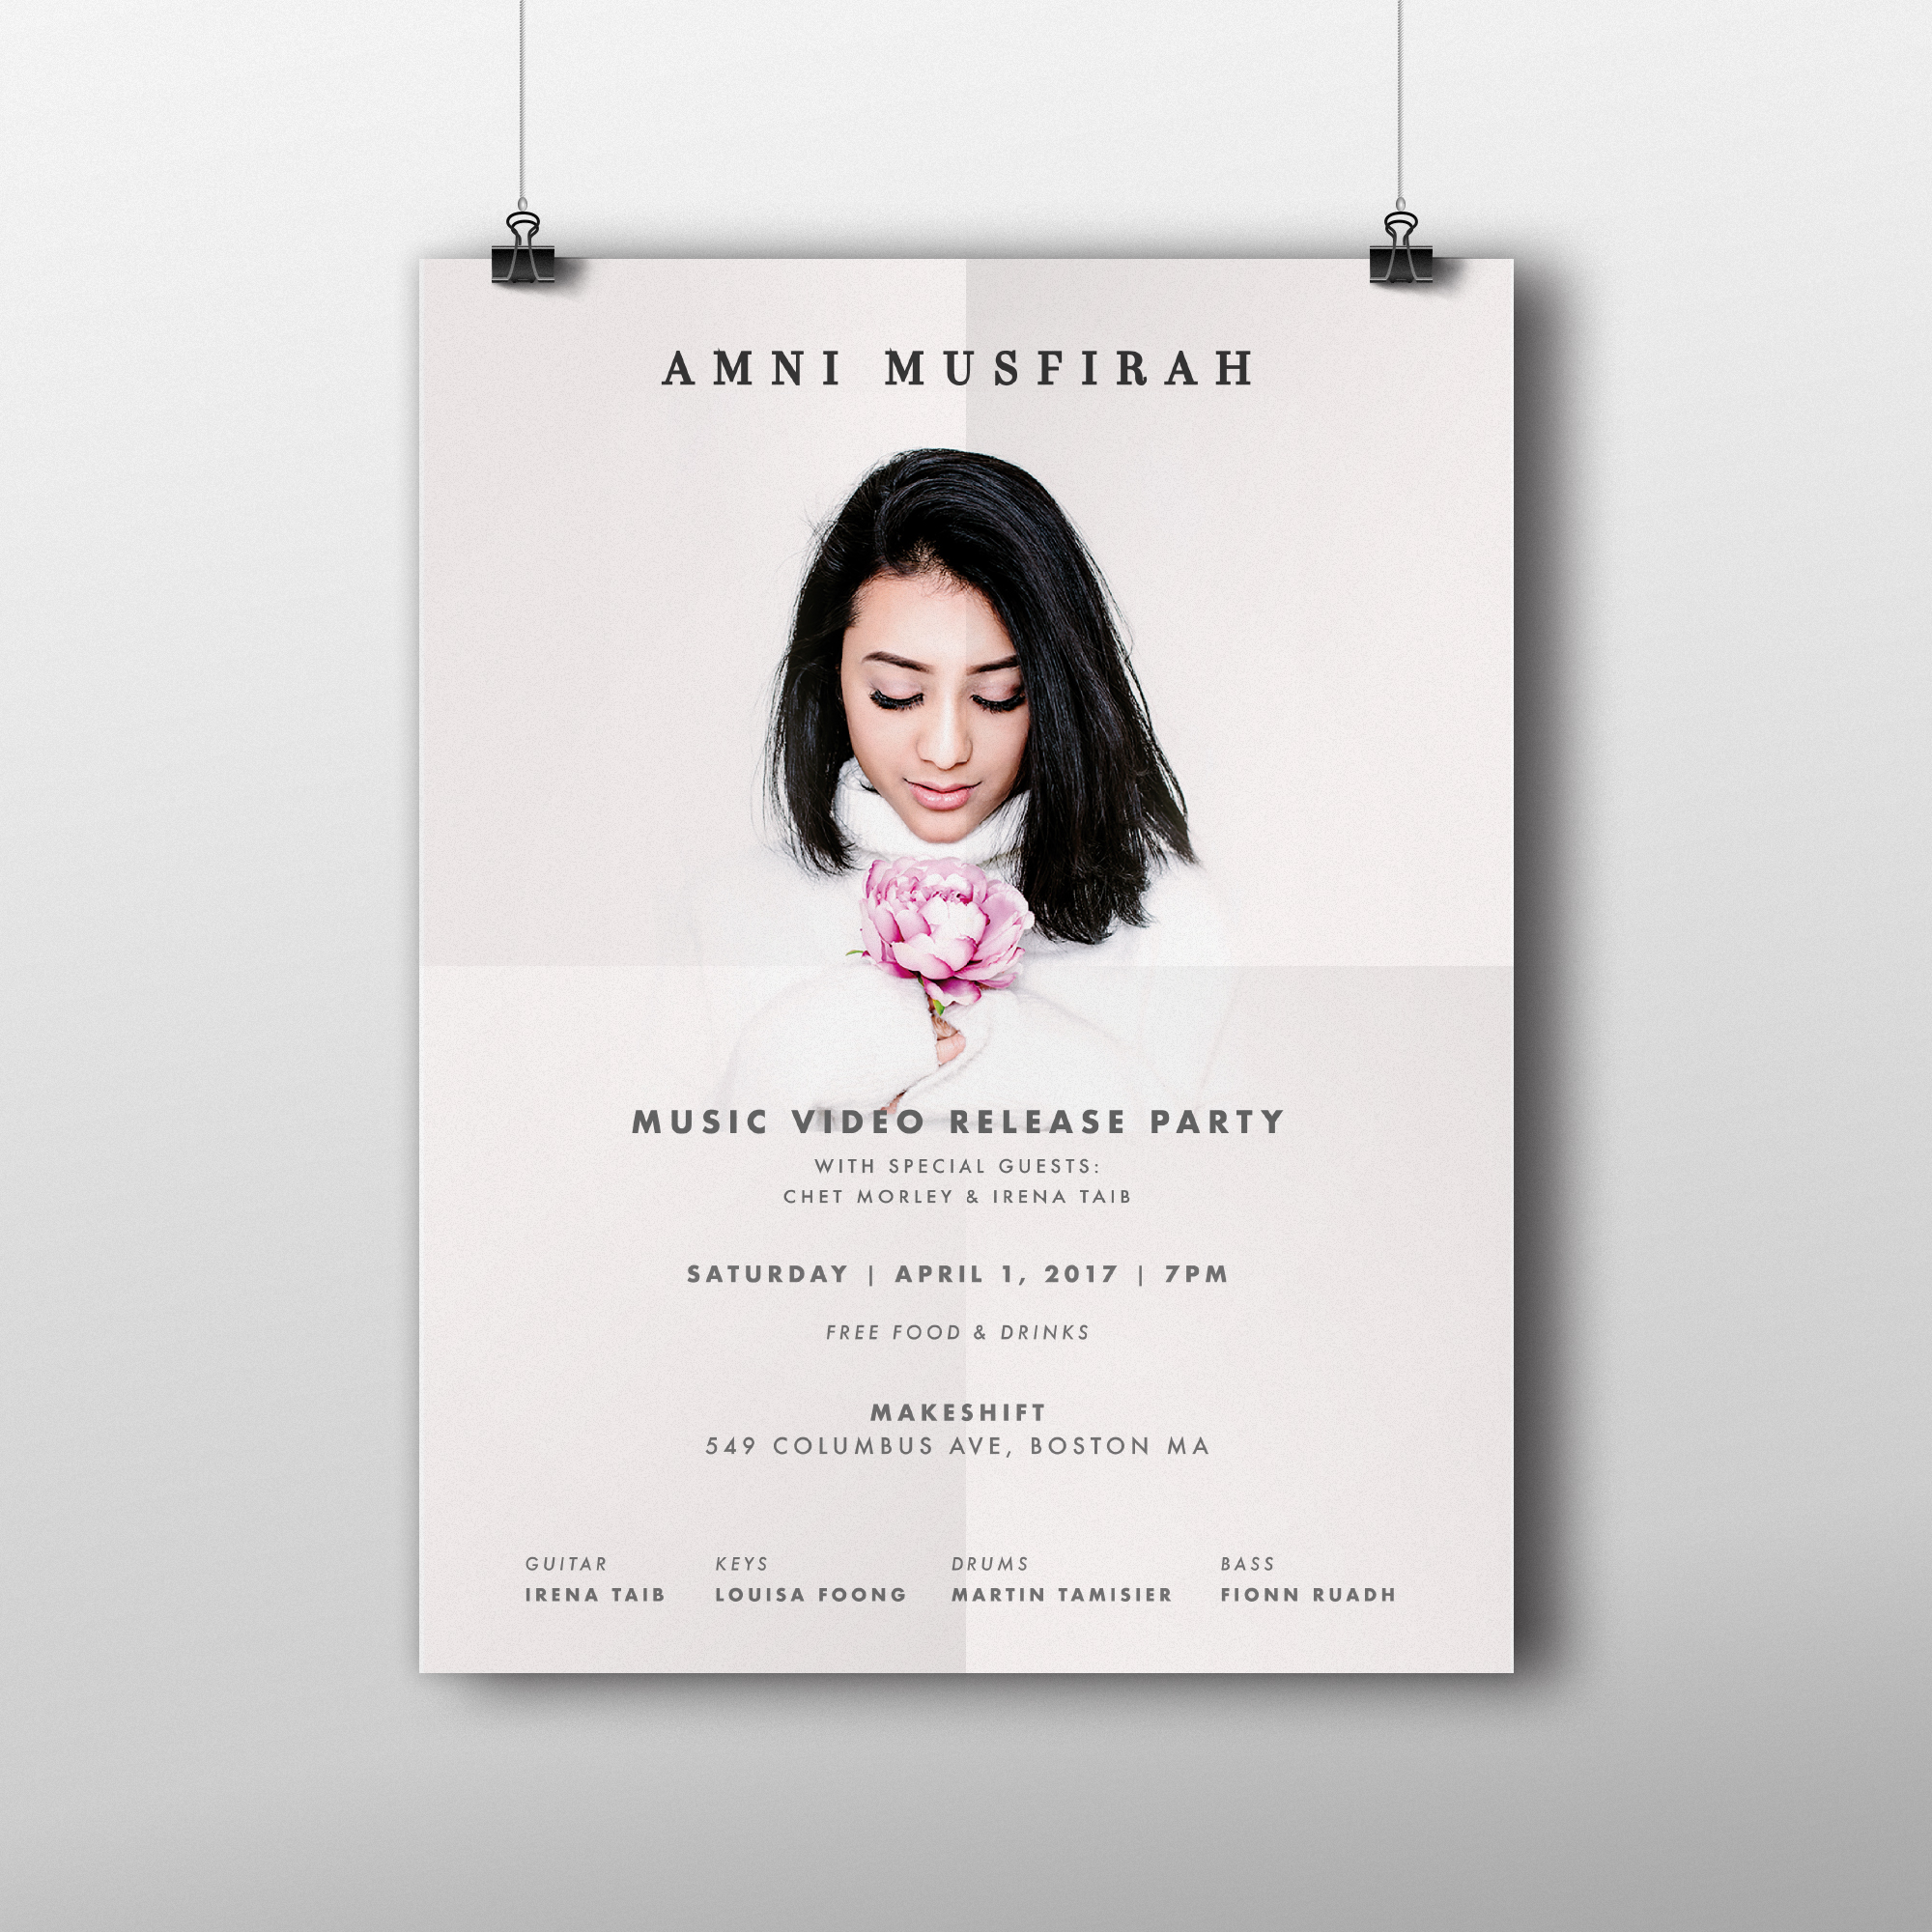 edited-Amni-NYH-Launch-Party-LetterSize-FAOL-cs5-01.jpg